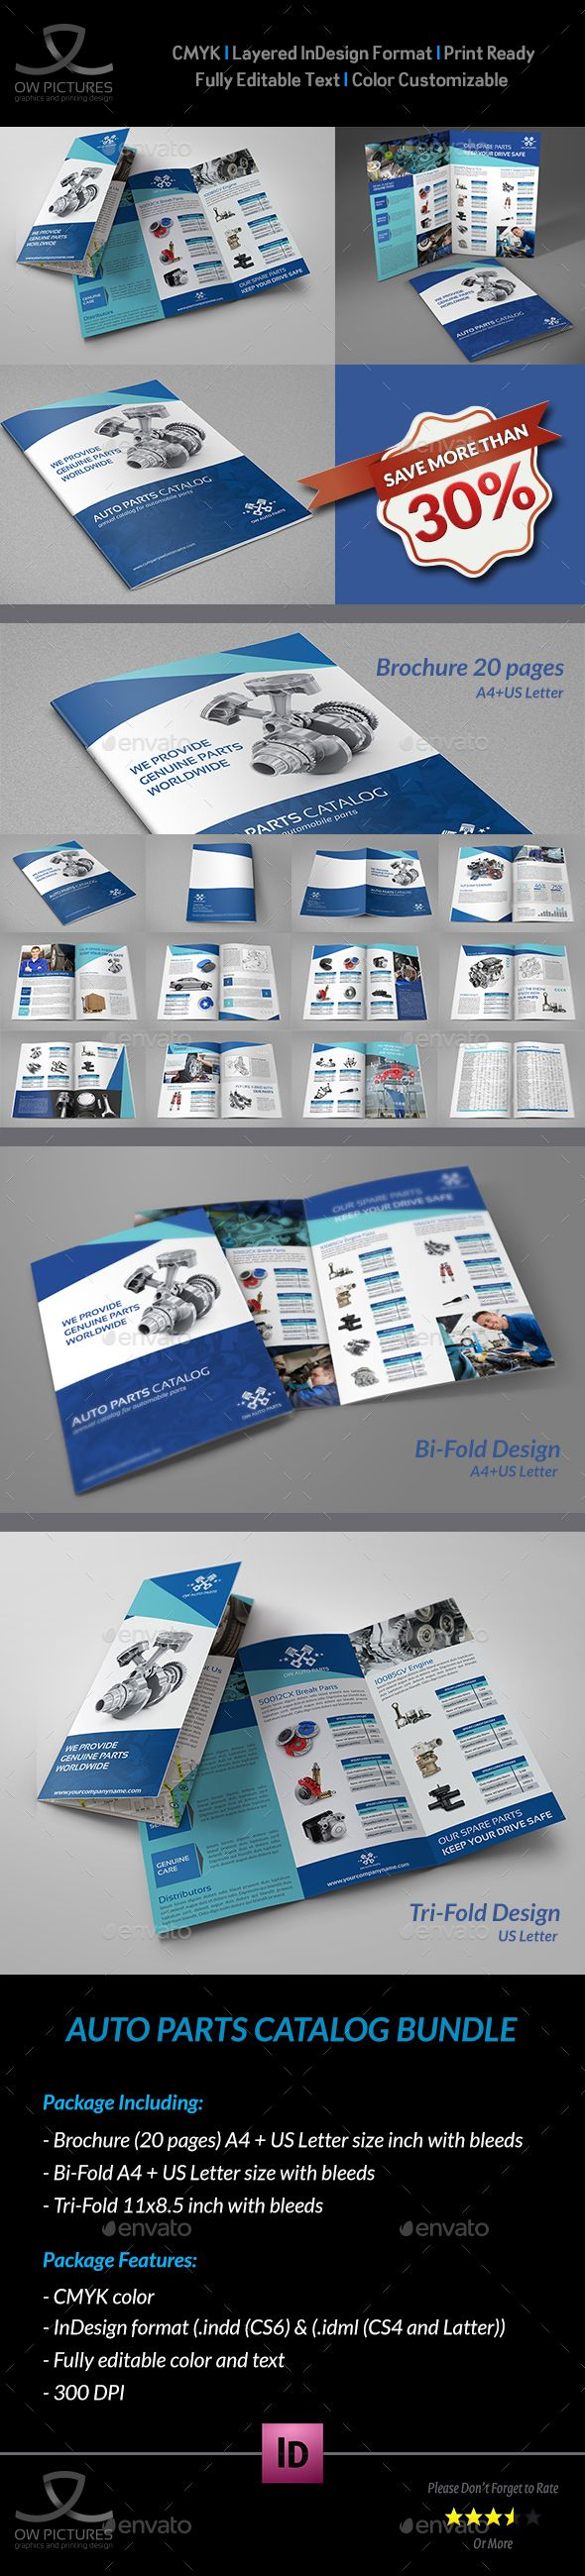 Auto Parts Catalog Brochure Bundle Template — InDesign INDD #component #brochure • Available here → https://graphicriver.net/item/auto-parts-catalog-brochure-bundle-template/13646105?ref=pxcr